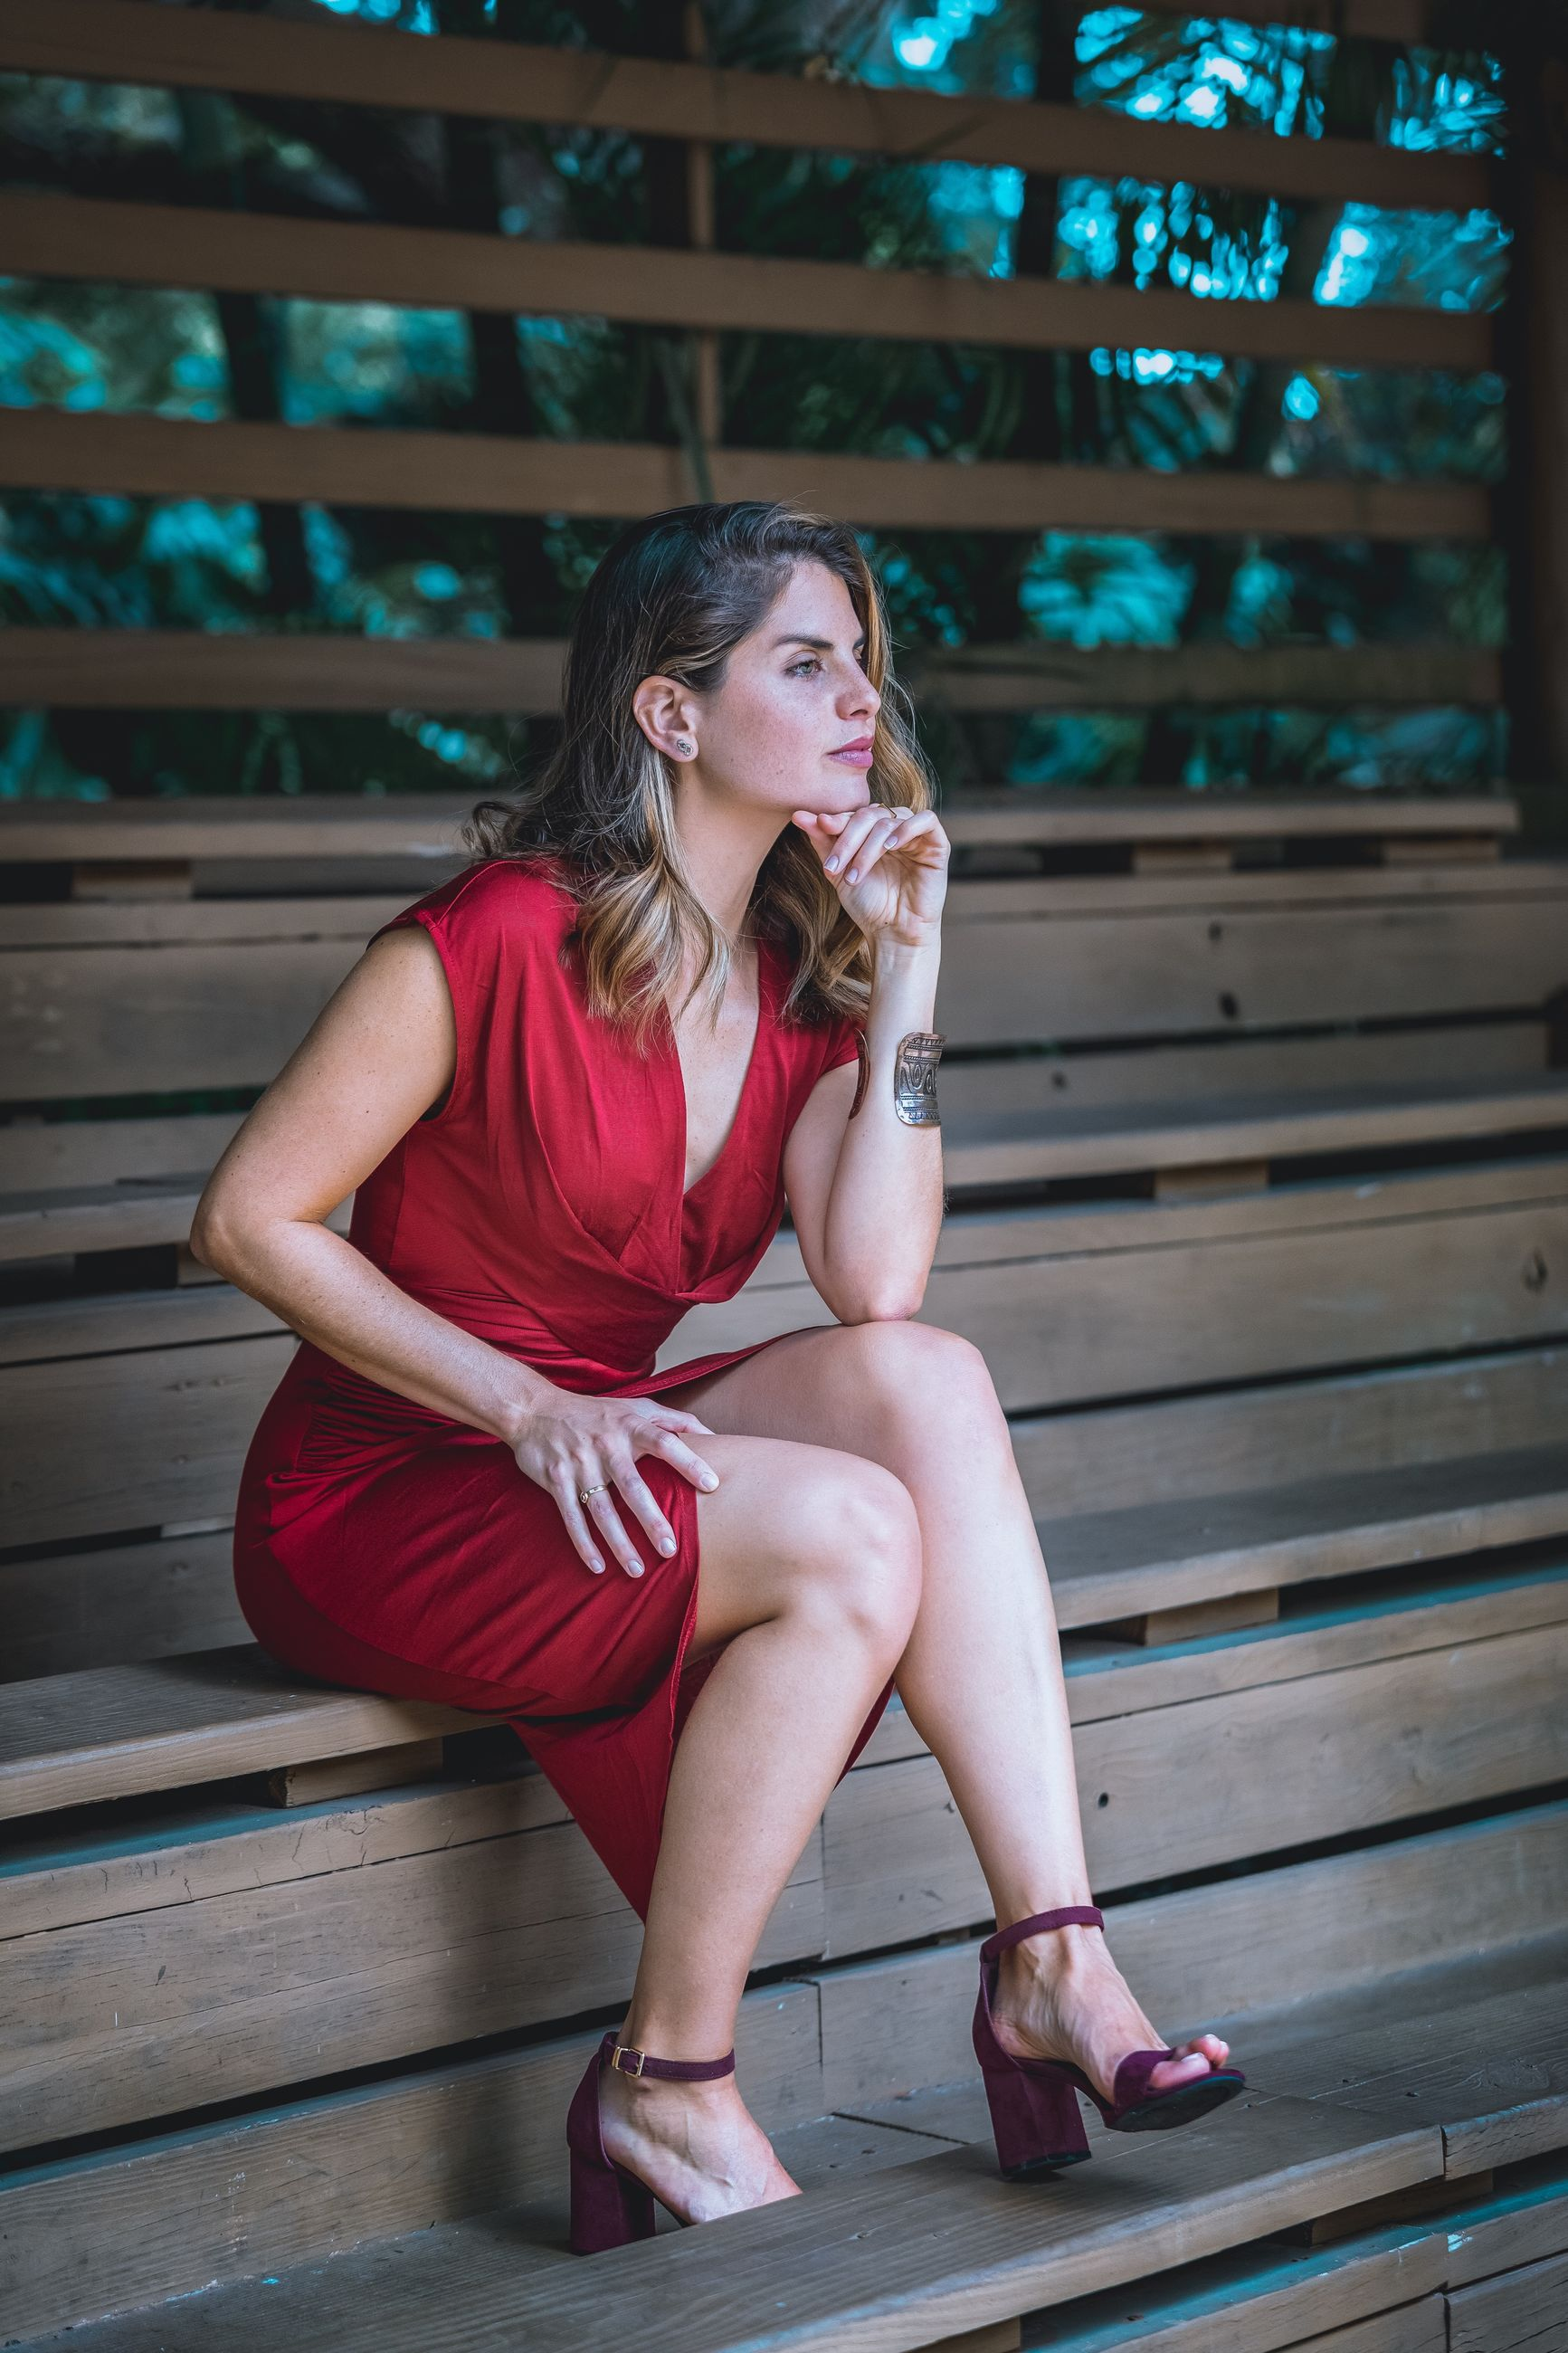 sitting, one person, real people, full length, front view, lifestyles, looking, casual clothing, young women, young adult, leisure activity, looking away, staircase, wood - material, seat, relaxation, women, adult, beautiful woman, hairstyle, contemplation